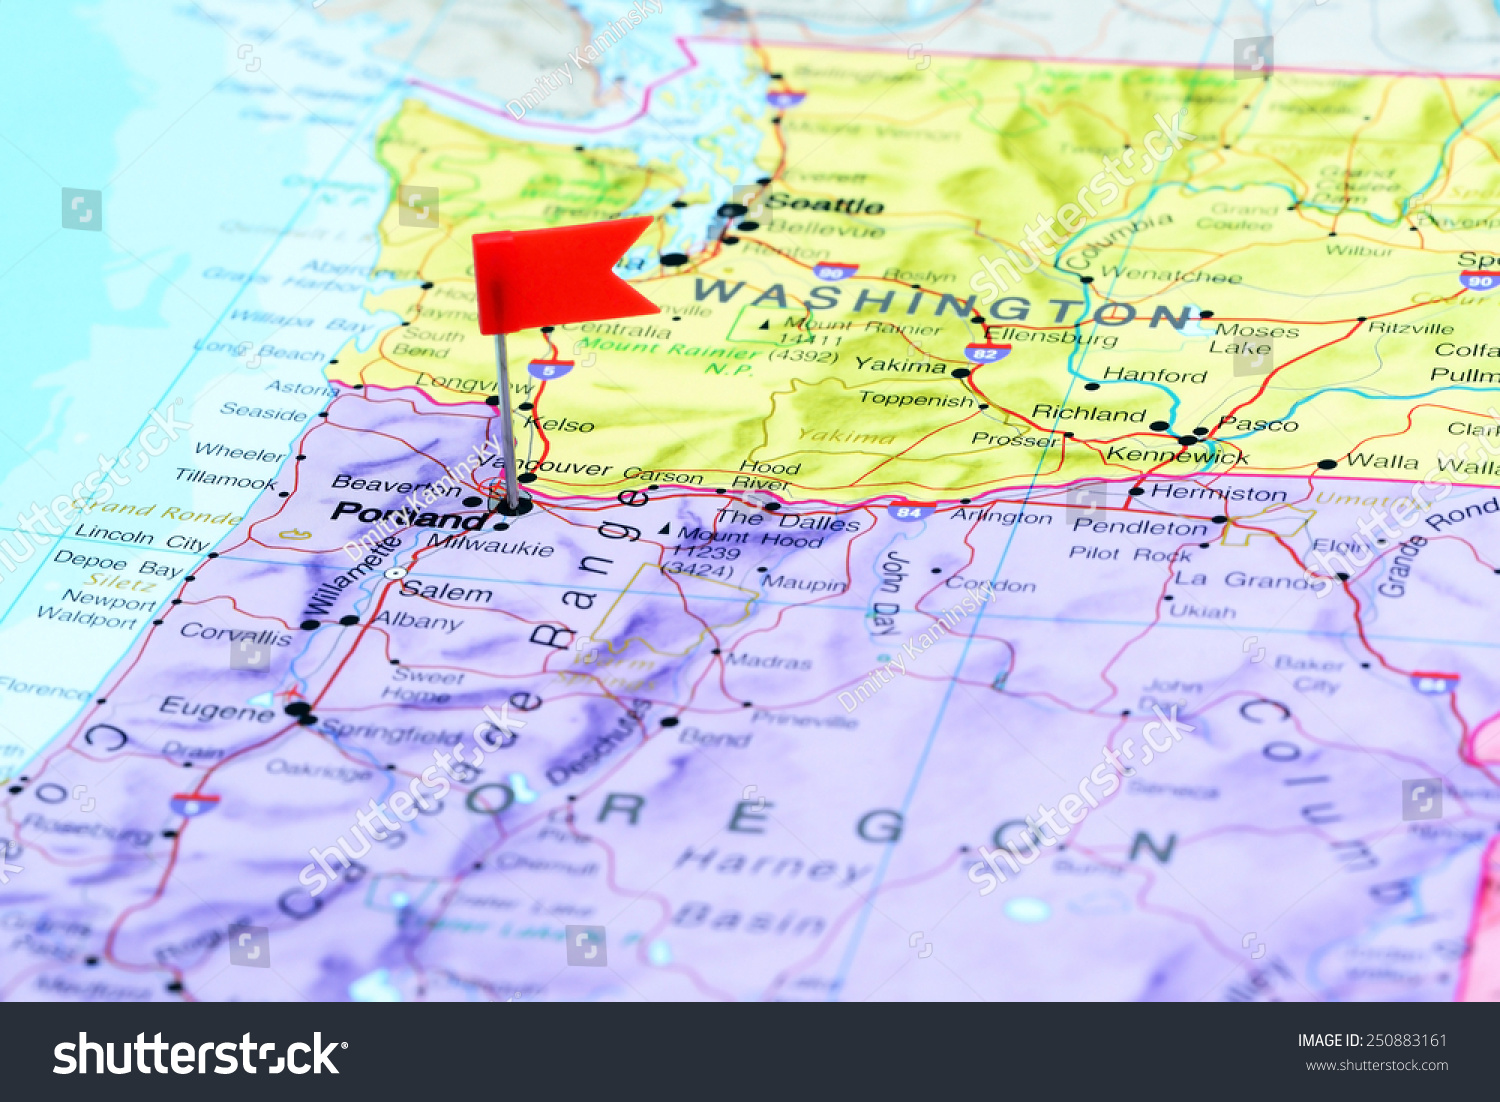 Portland Pinned On Map Usa Stock Photo Shutterstock - Portland usa map